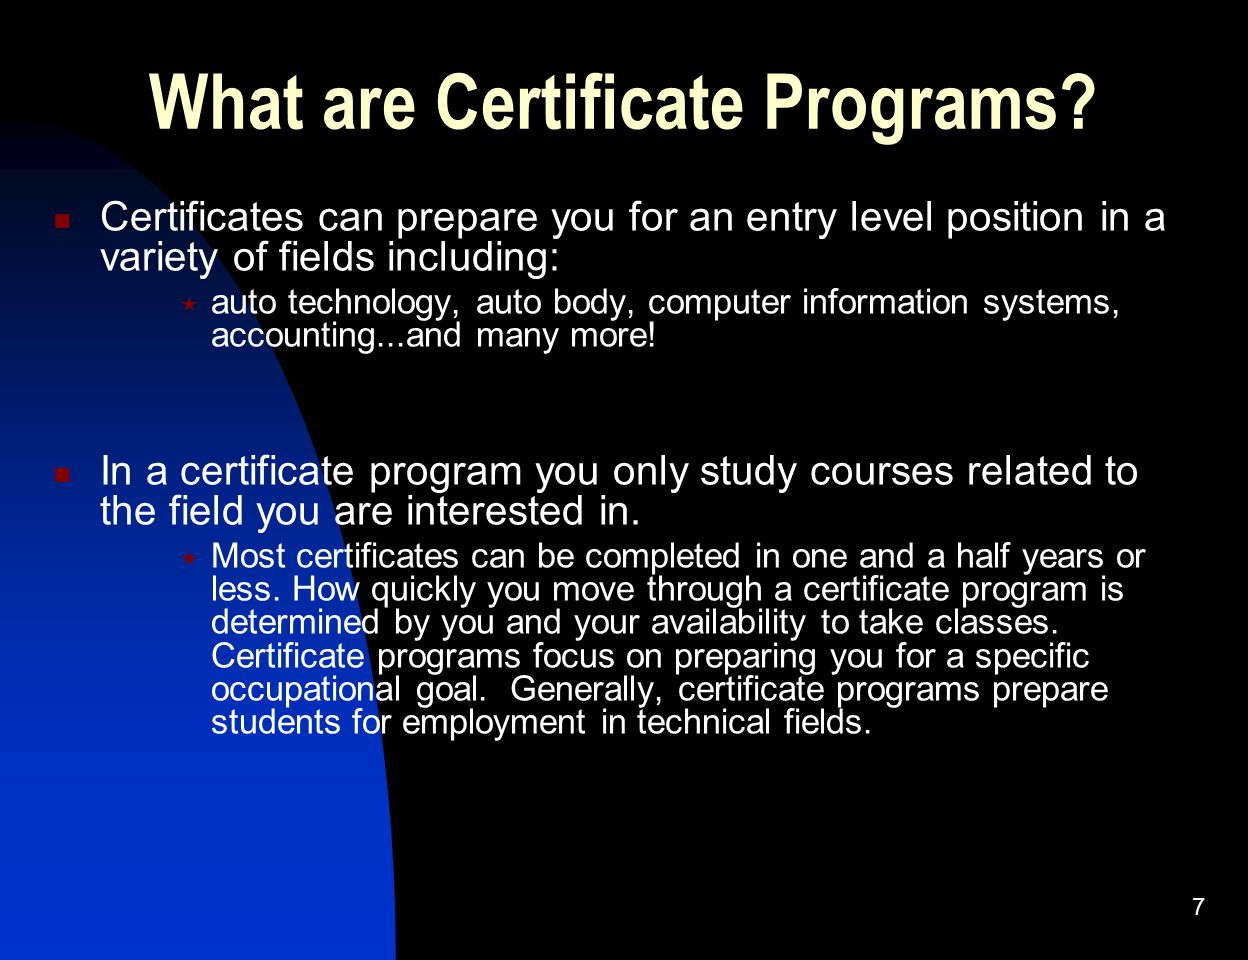 What are Certificate Programs